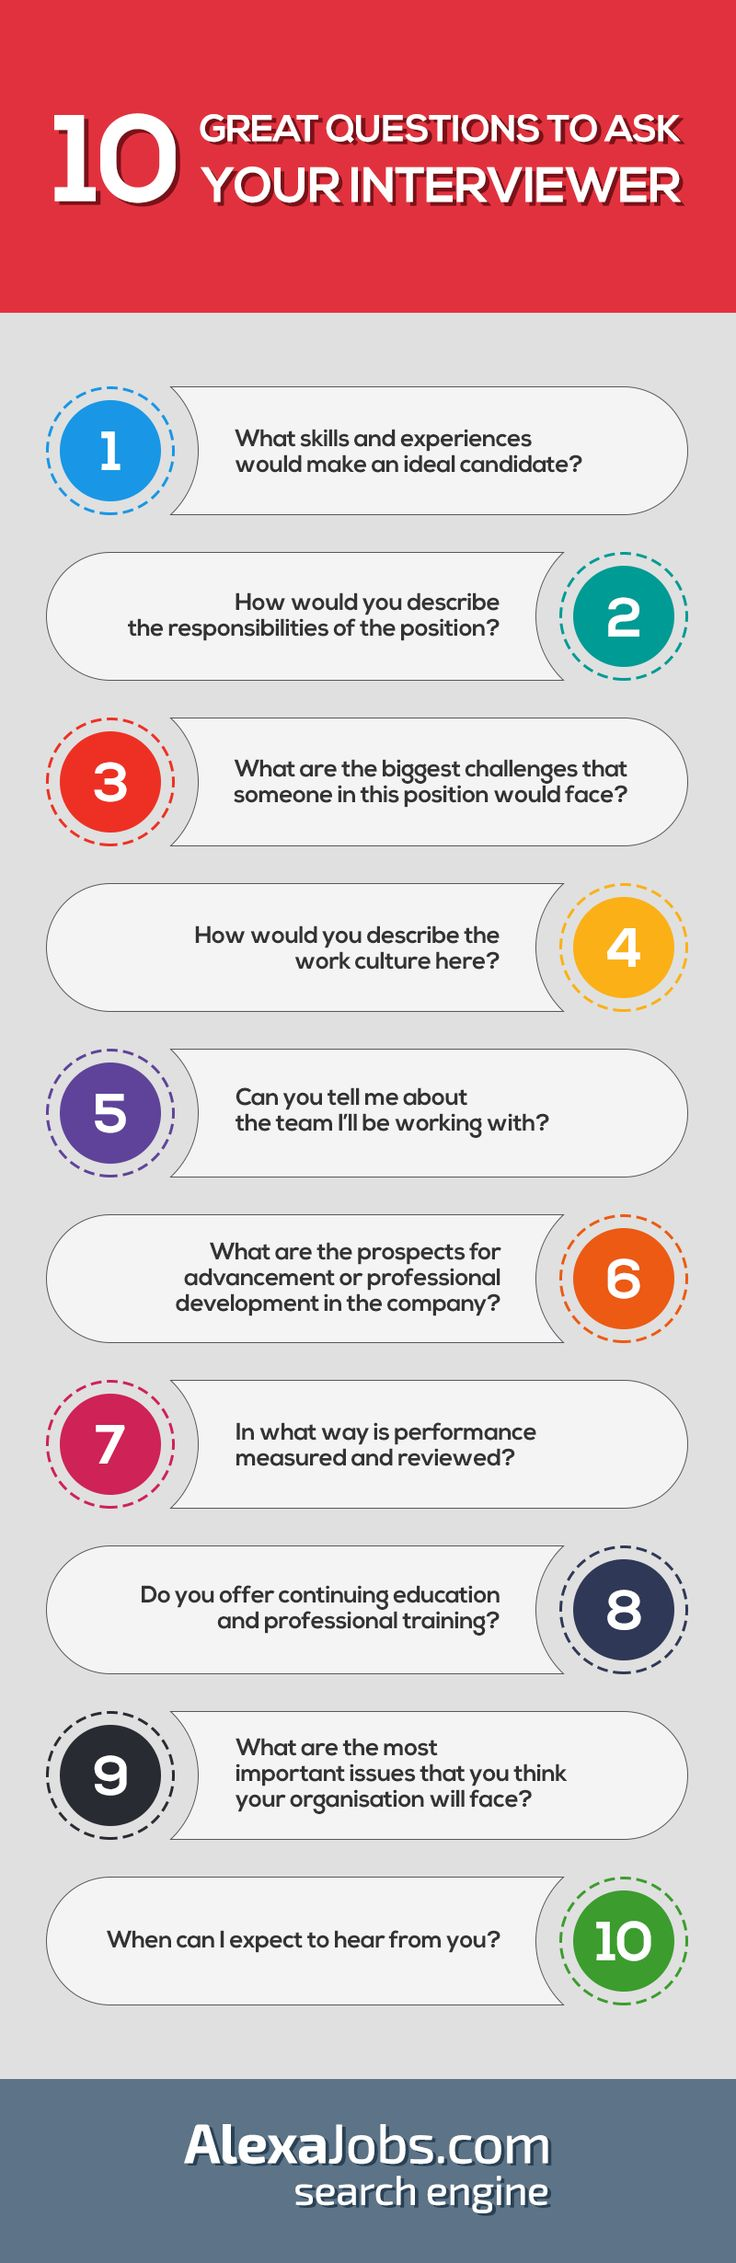 10 Great Questions To Ask Your Interviewer. [Infographic]   Often job interviews can feel like an interrogation, but they're meant to be a conversation between you and a potential employer. Many job seekers focus so hard answering interview questions that they forget they are there to ask questions, too.